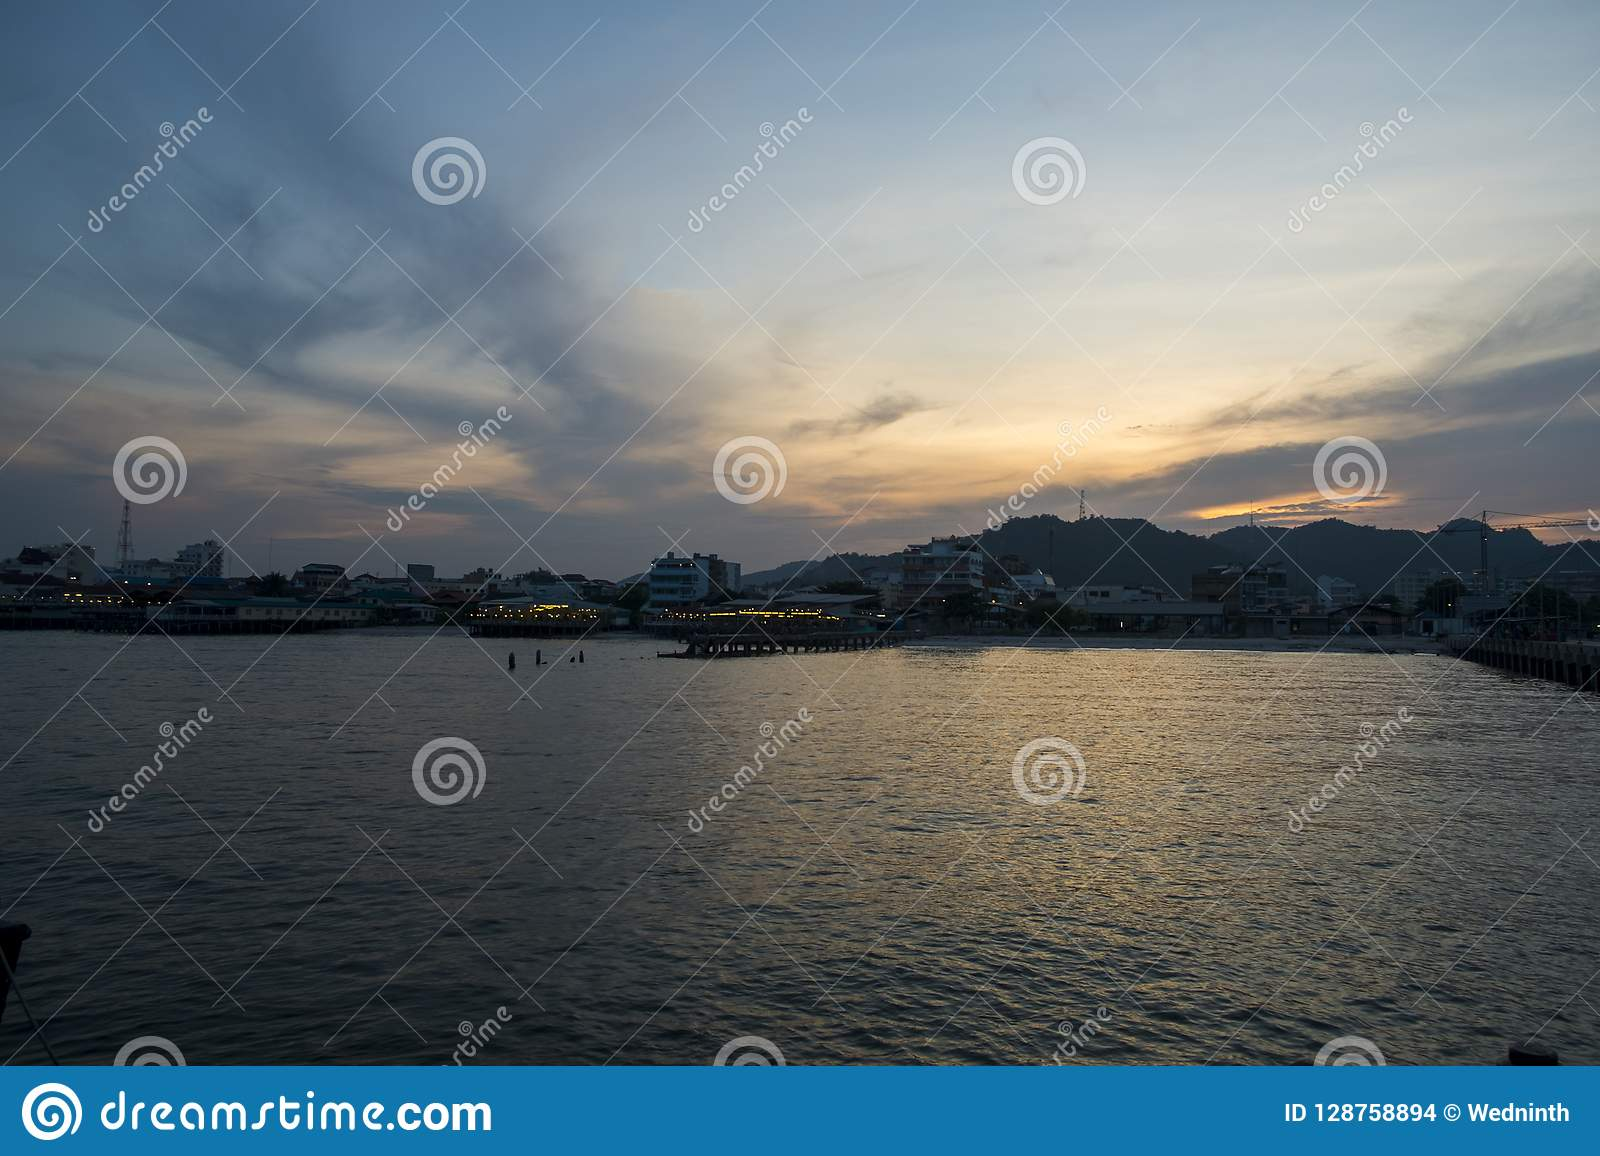 Blue sea and clouds on sky with water surface and sunlight reflections